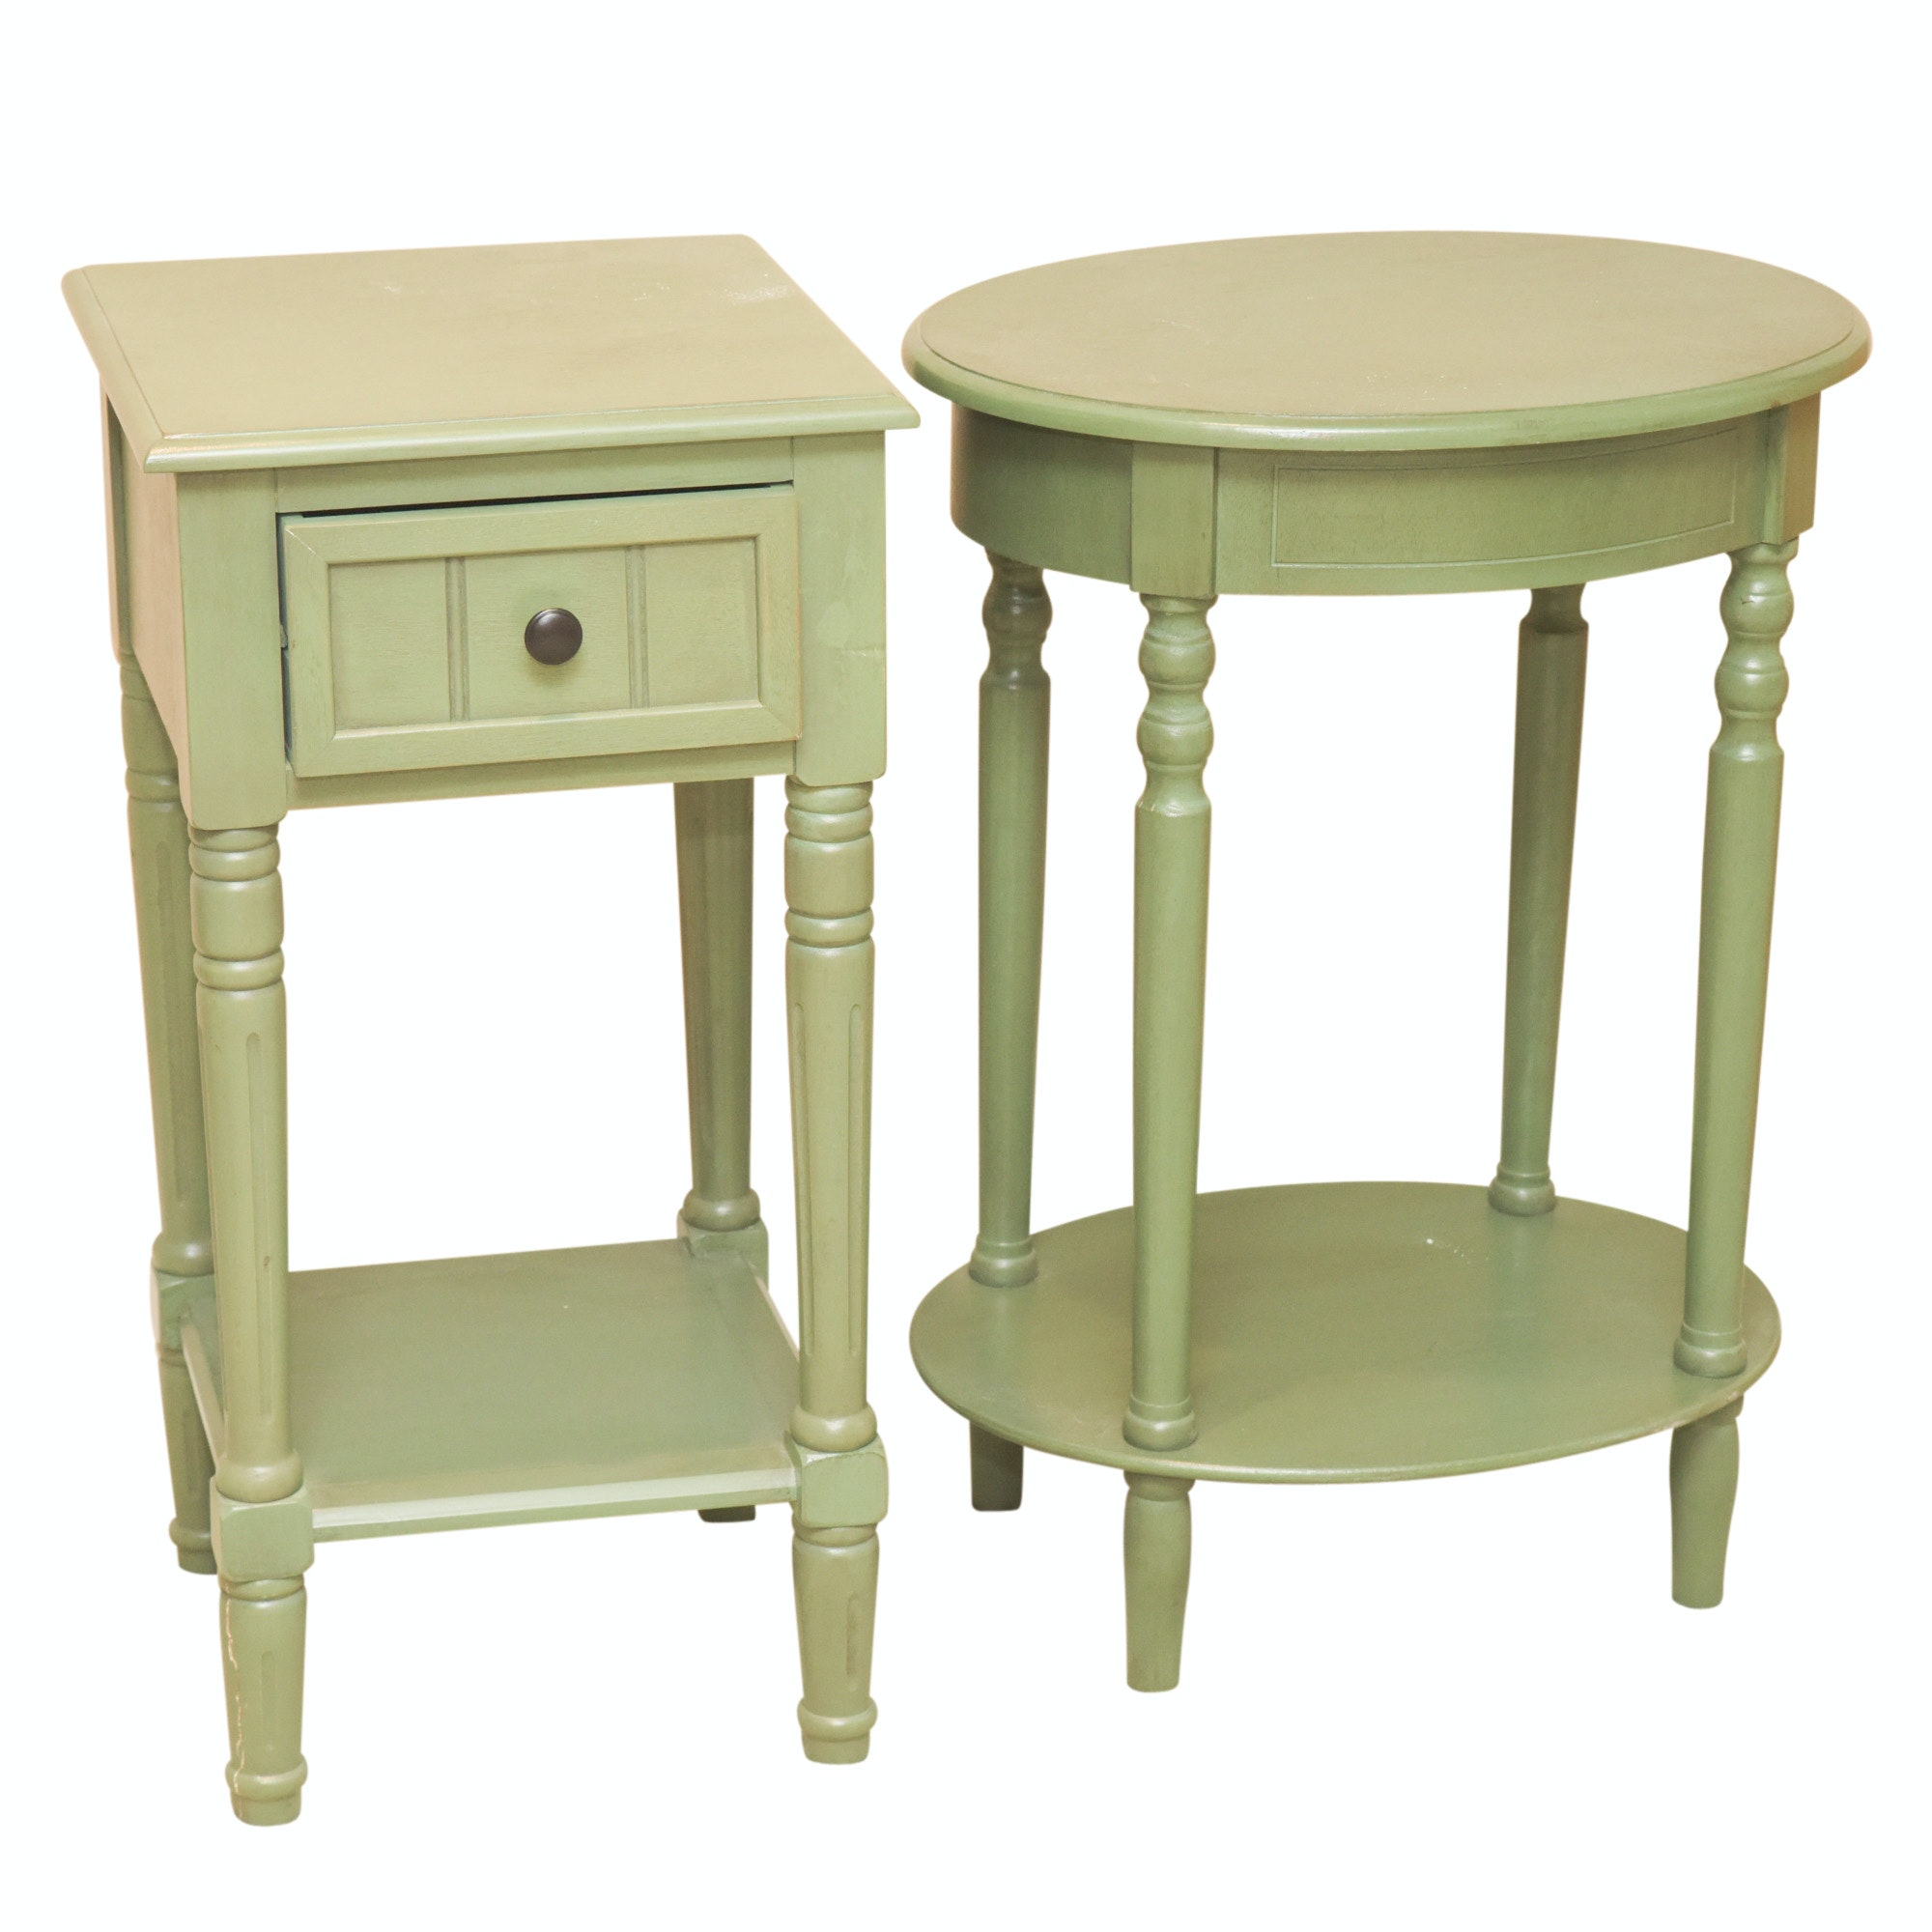 Contemporary Green Painted Side Tables